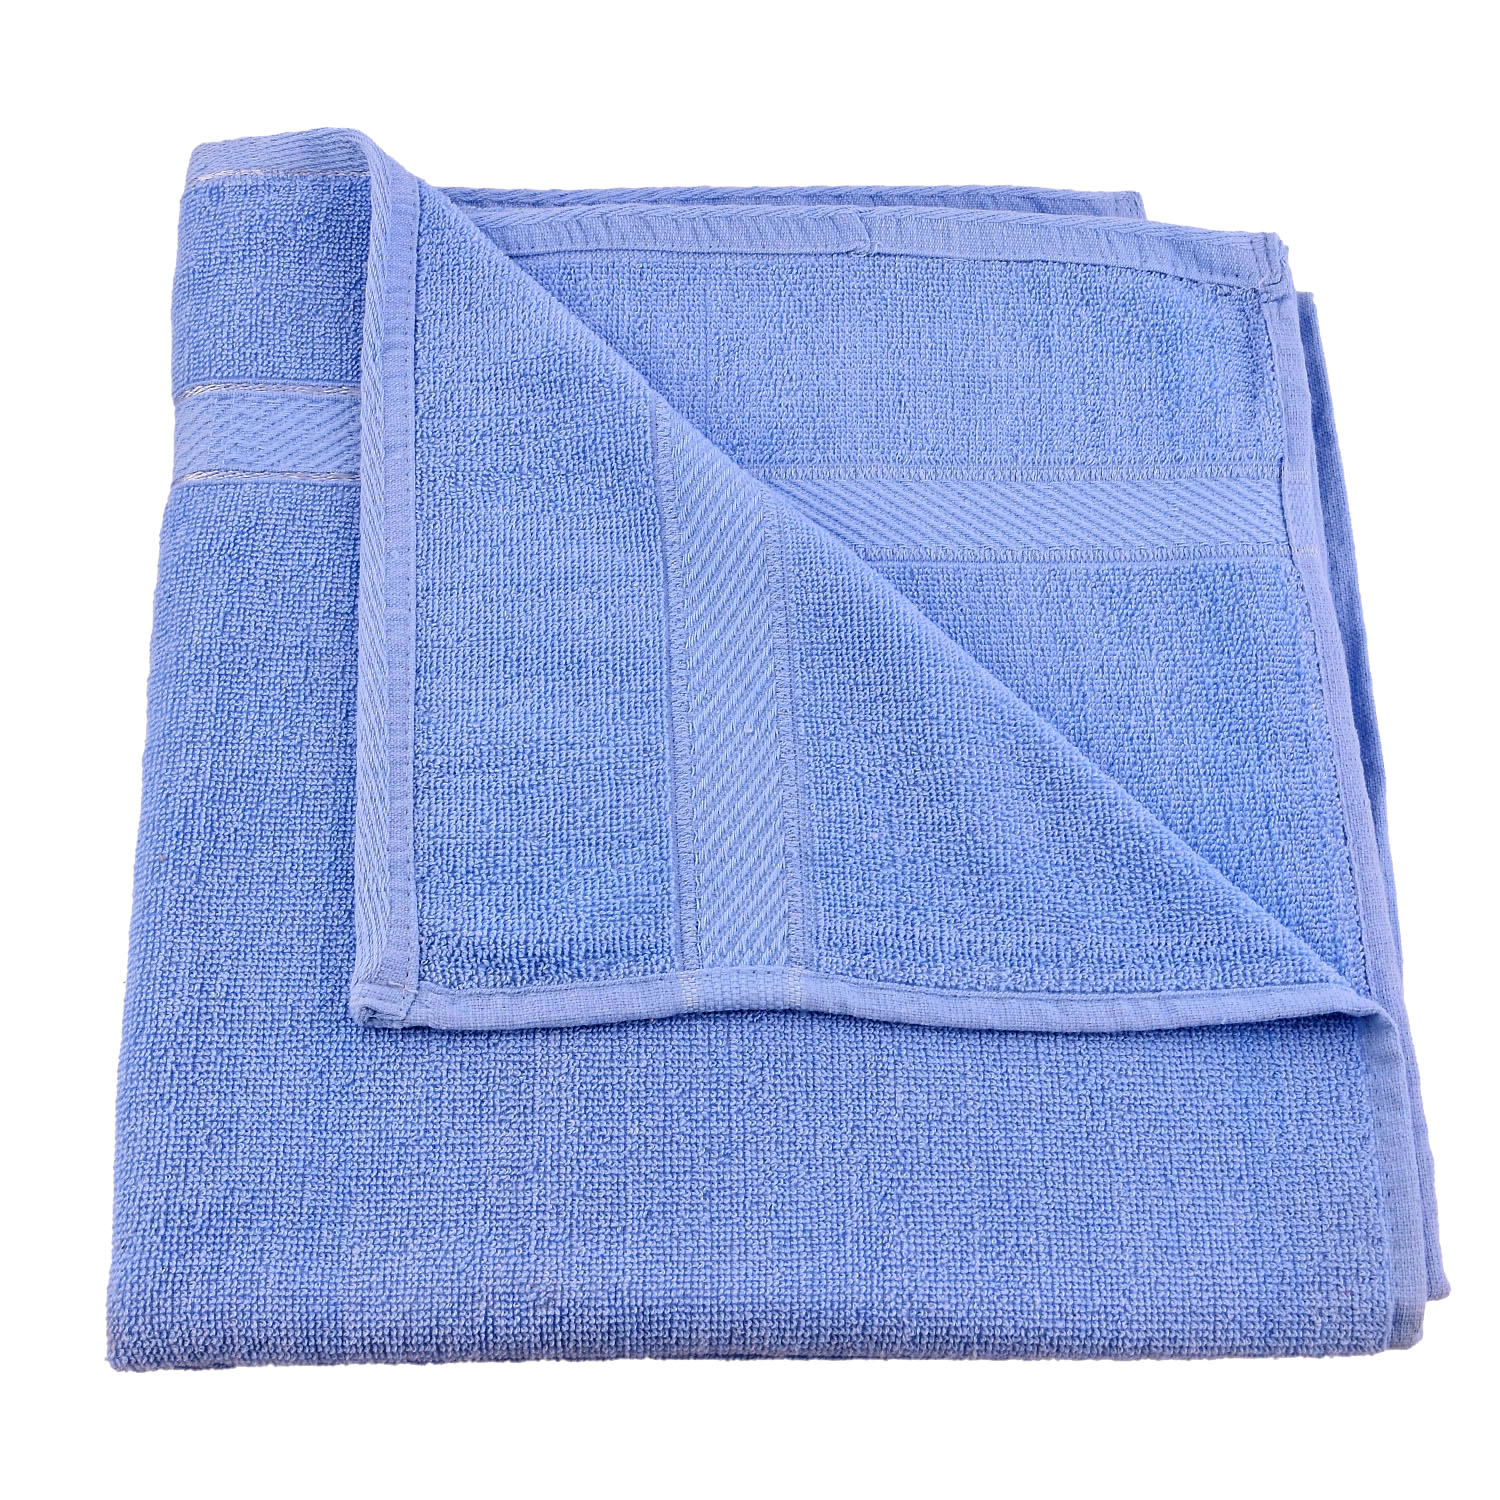 "Kuber Industries 100 Percent Cotton 3 Pieces Full Size Bath Towel 30""x60"" (Blue)"